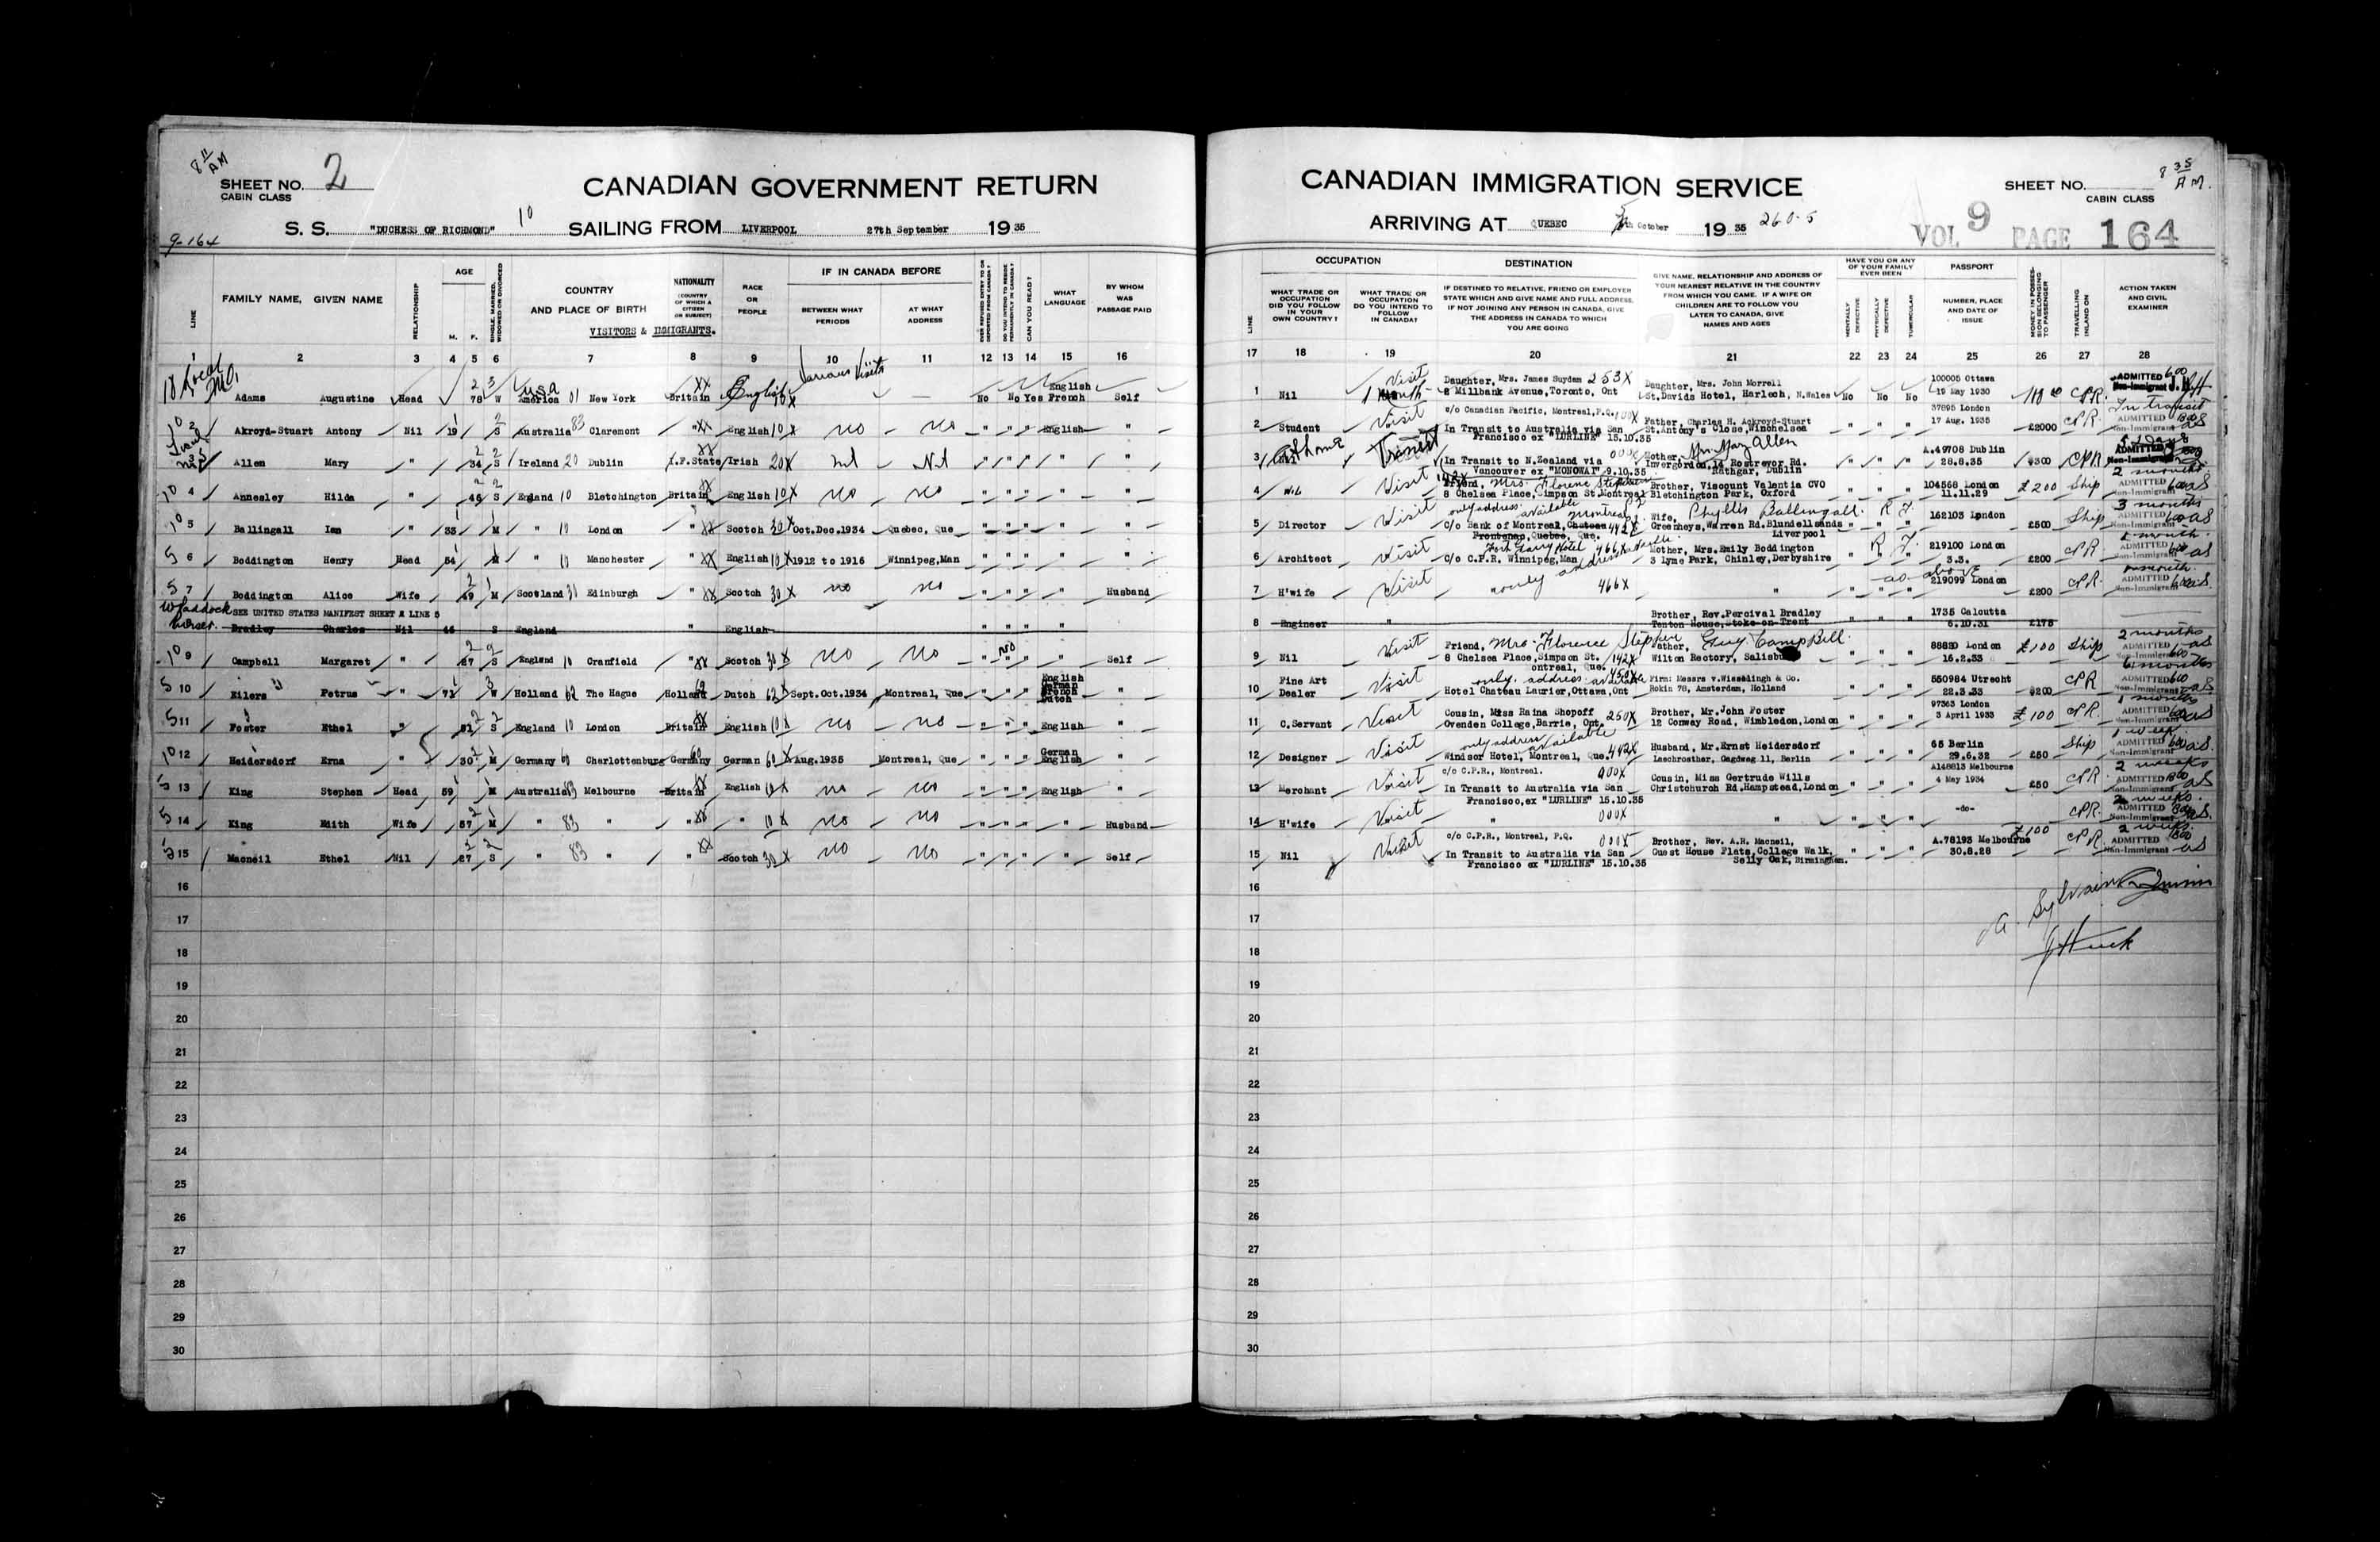 Title: Passenger Lists: Quebec City (1925-1935) - Mikan Number: 134839 - Microform: t-14793